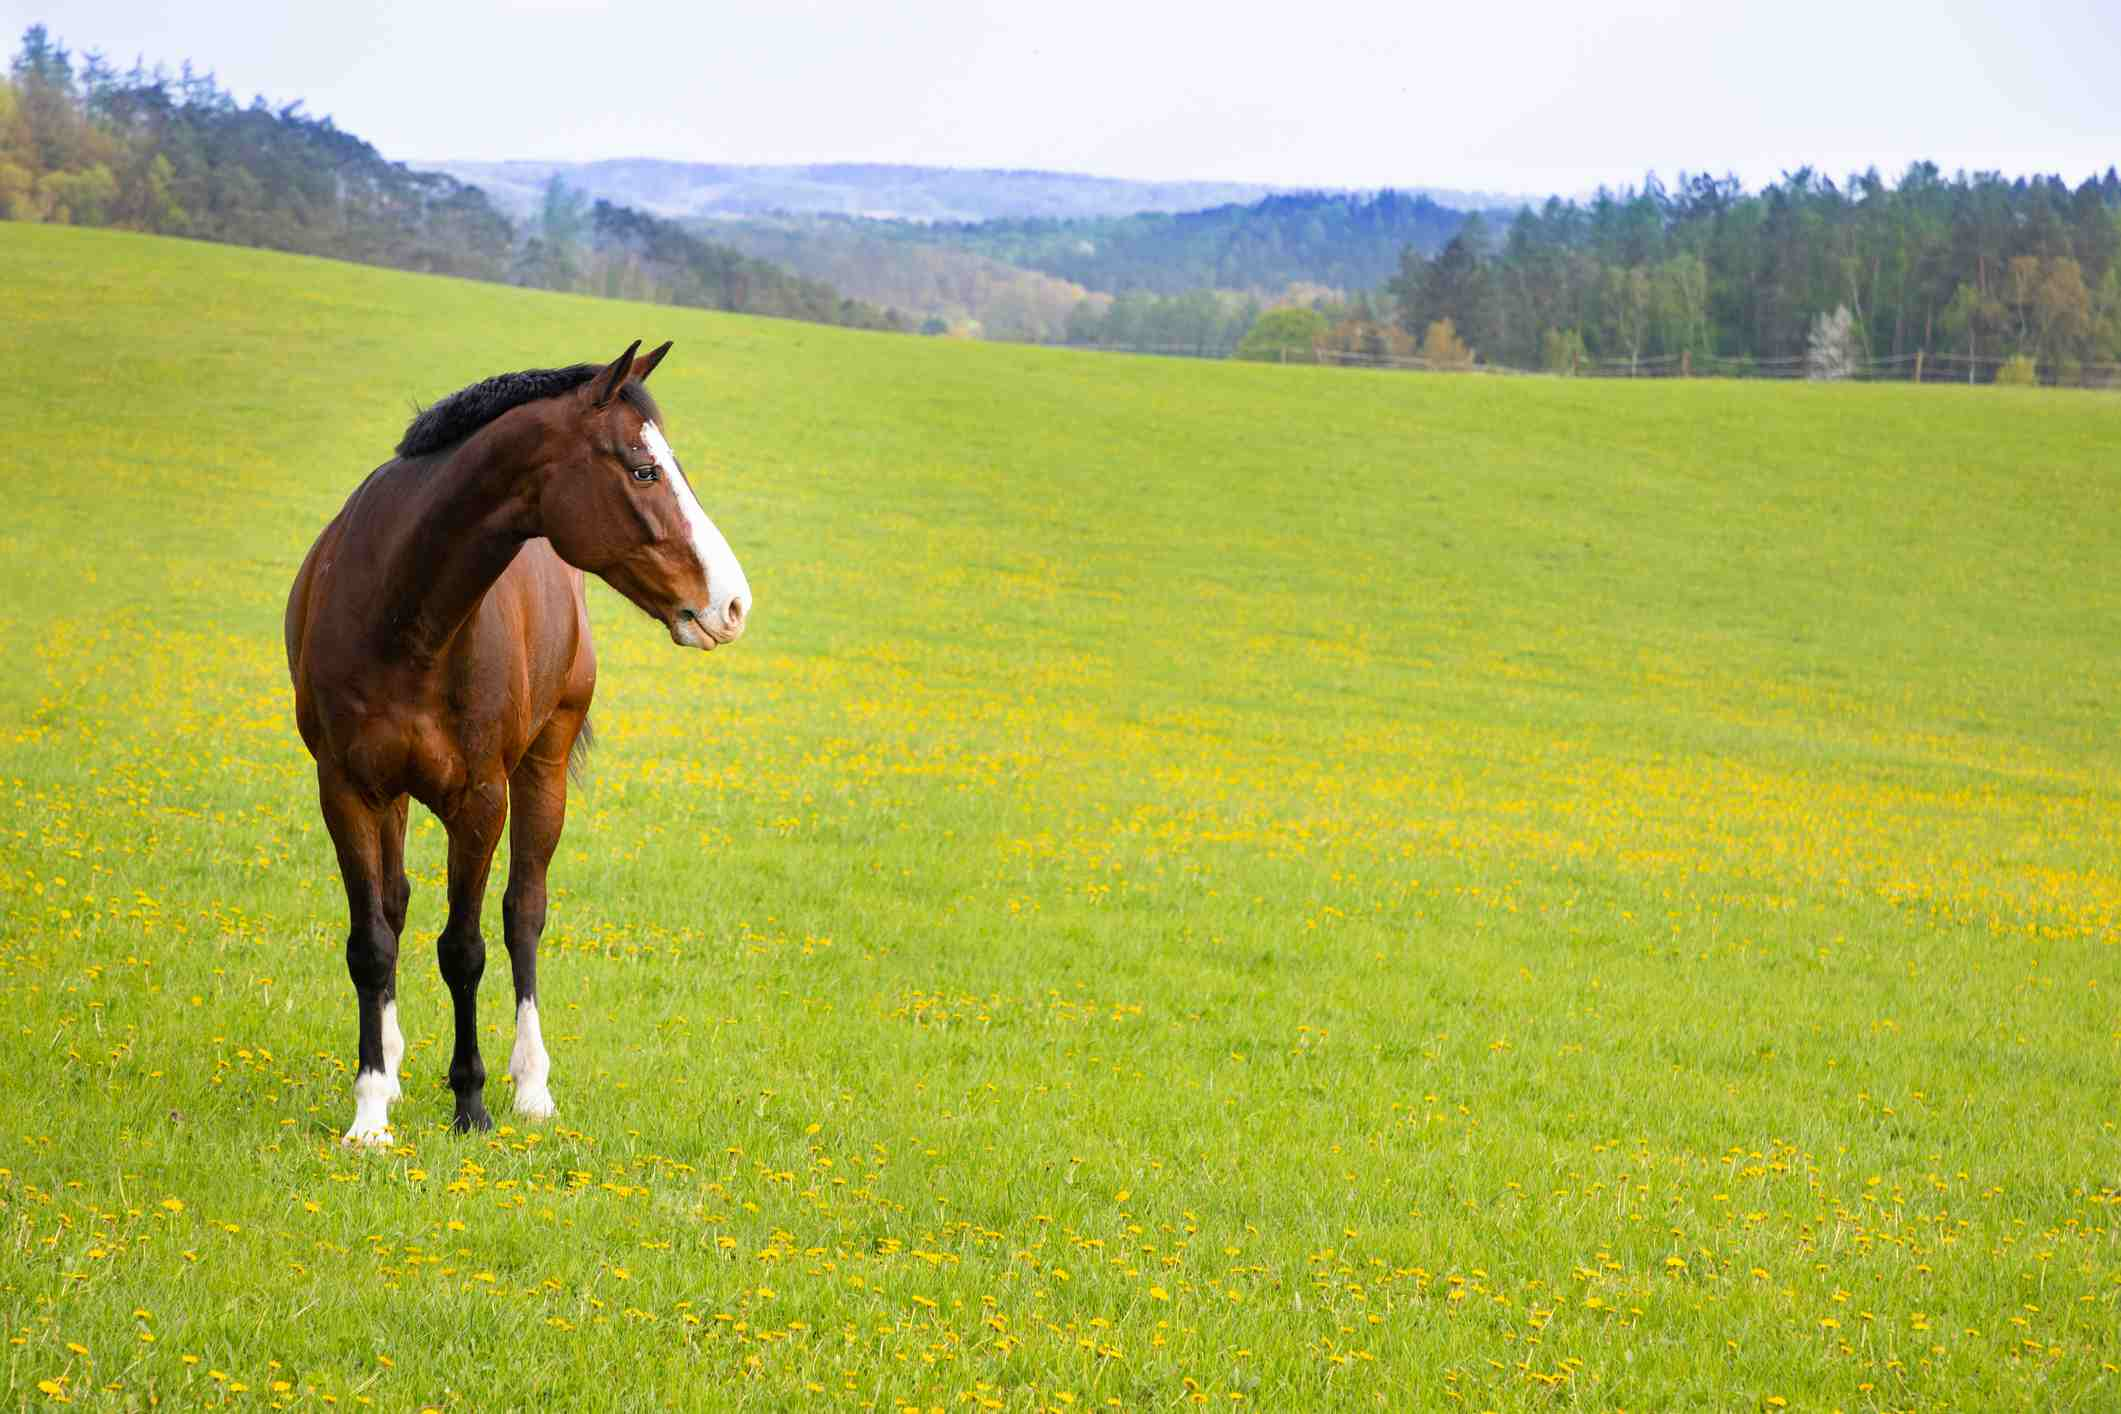 Horse looking lost on a field